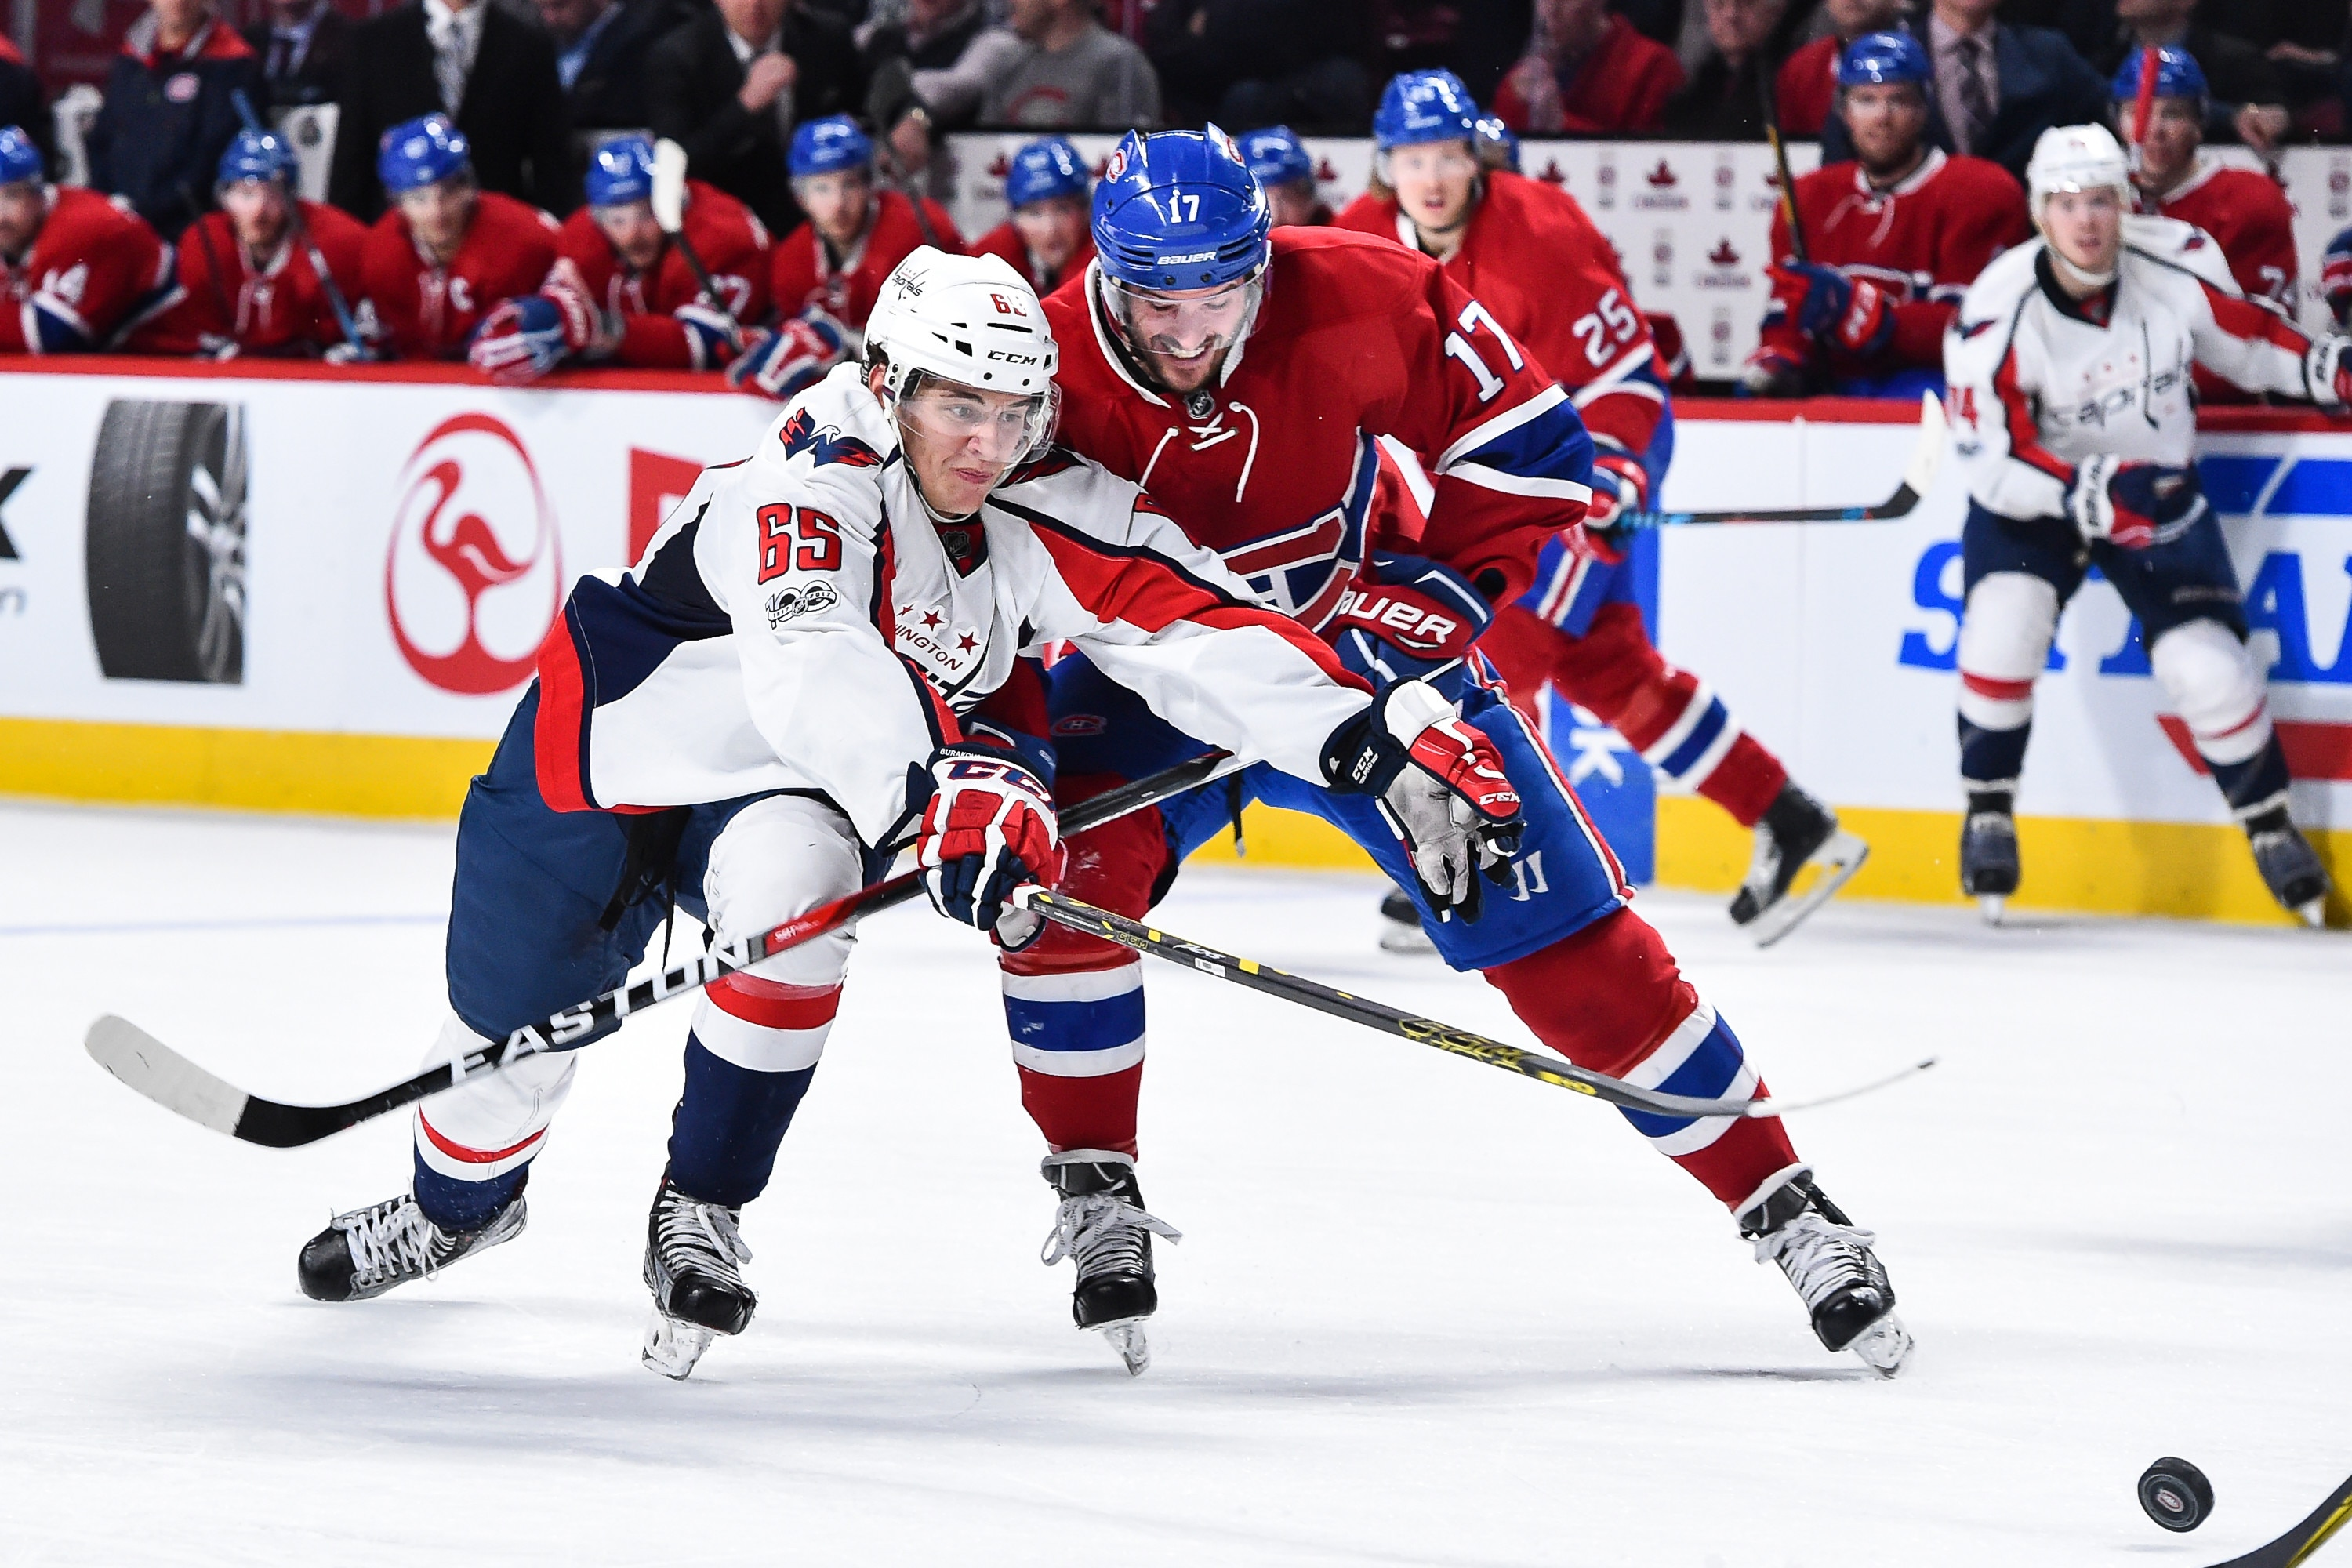 Andre-burakovsky-montreal-canadiens